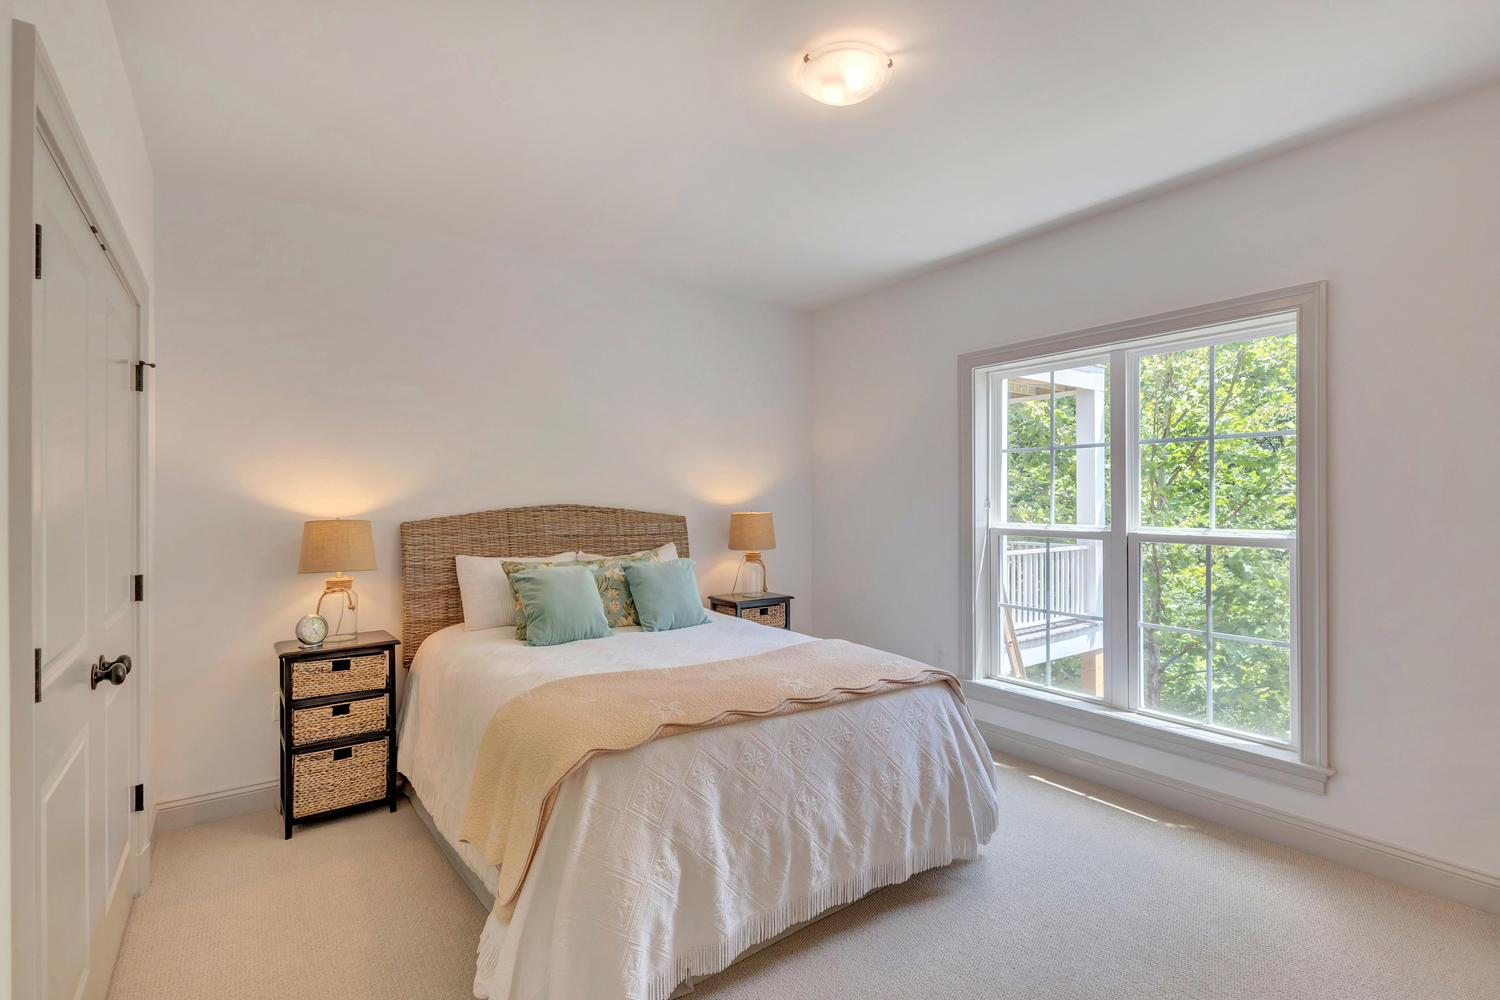 Bedroom featured in the Old Trail Townes By Craig Builders in Charlottesville, VA